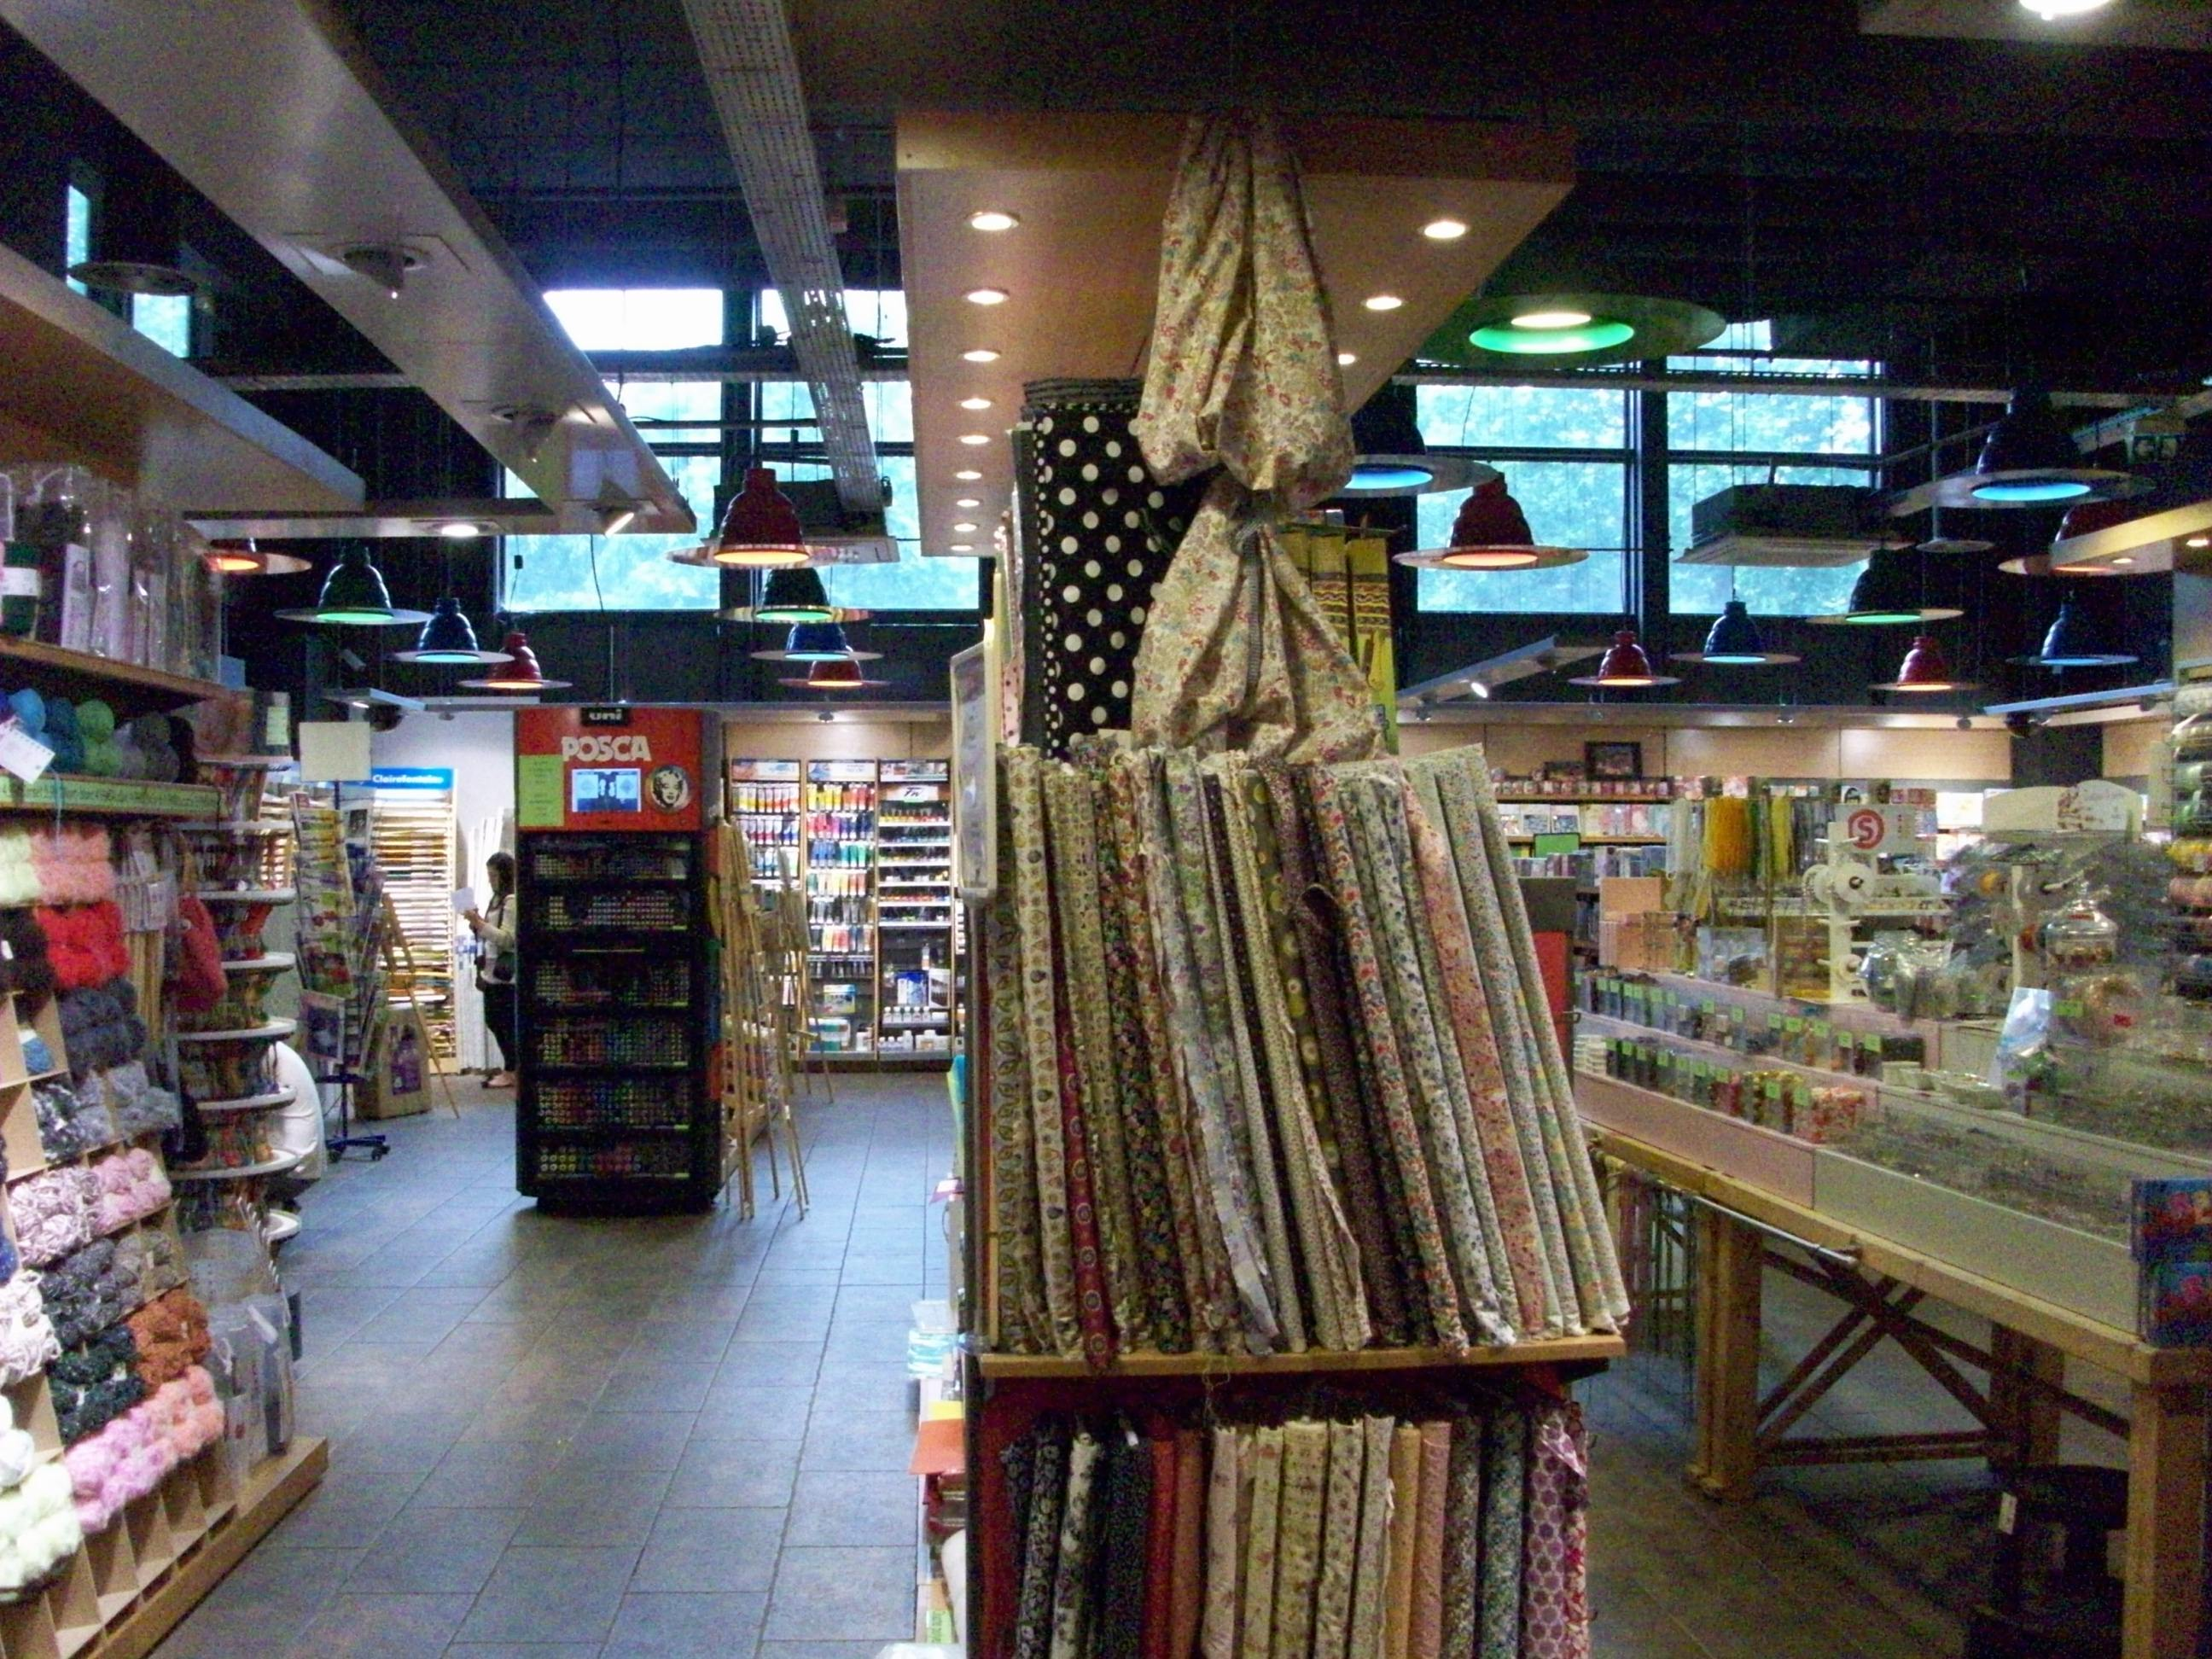 Loisir et creation bercy - Magasin loisirs et creation ...